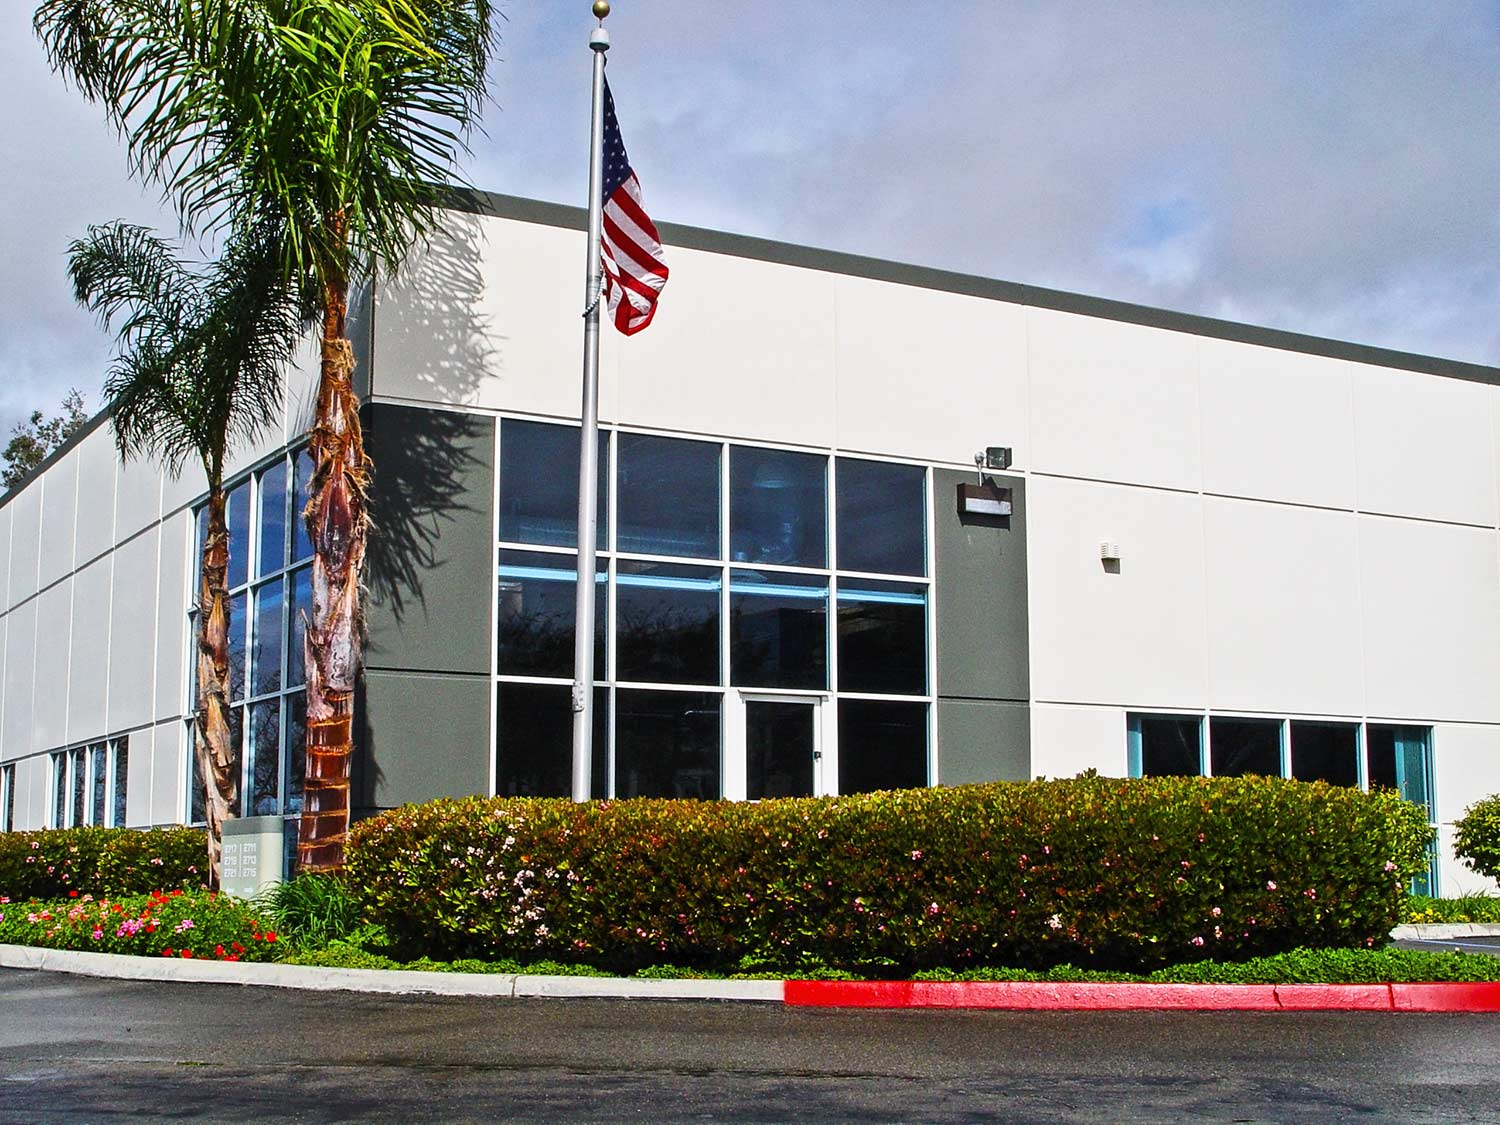 Exterior of commercial office building in Carlsbad